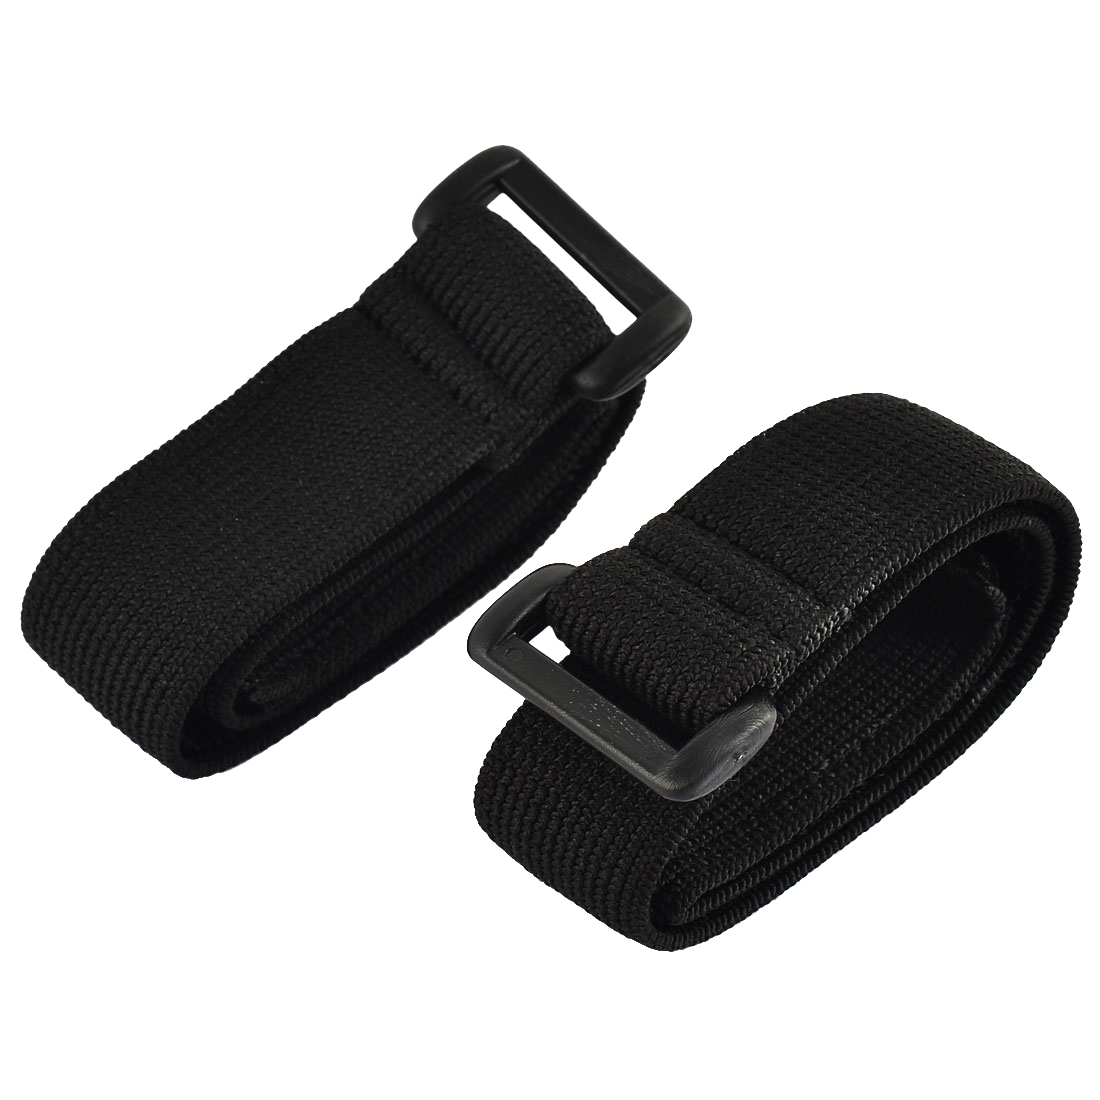 Luggage Nylon Elastic Cable Organizer Hook Loop Tie Strap Black 2.5 x 40cm 2pcs